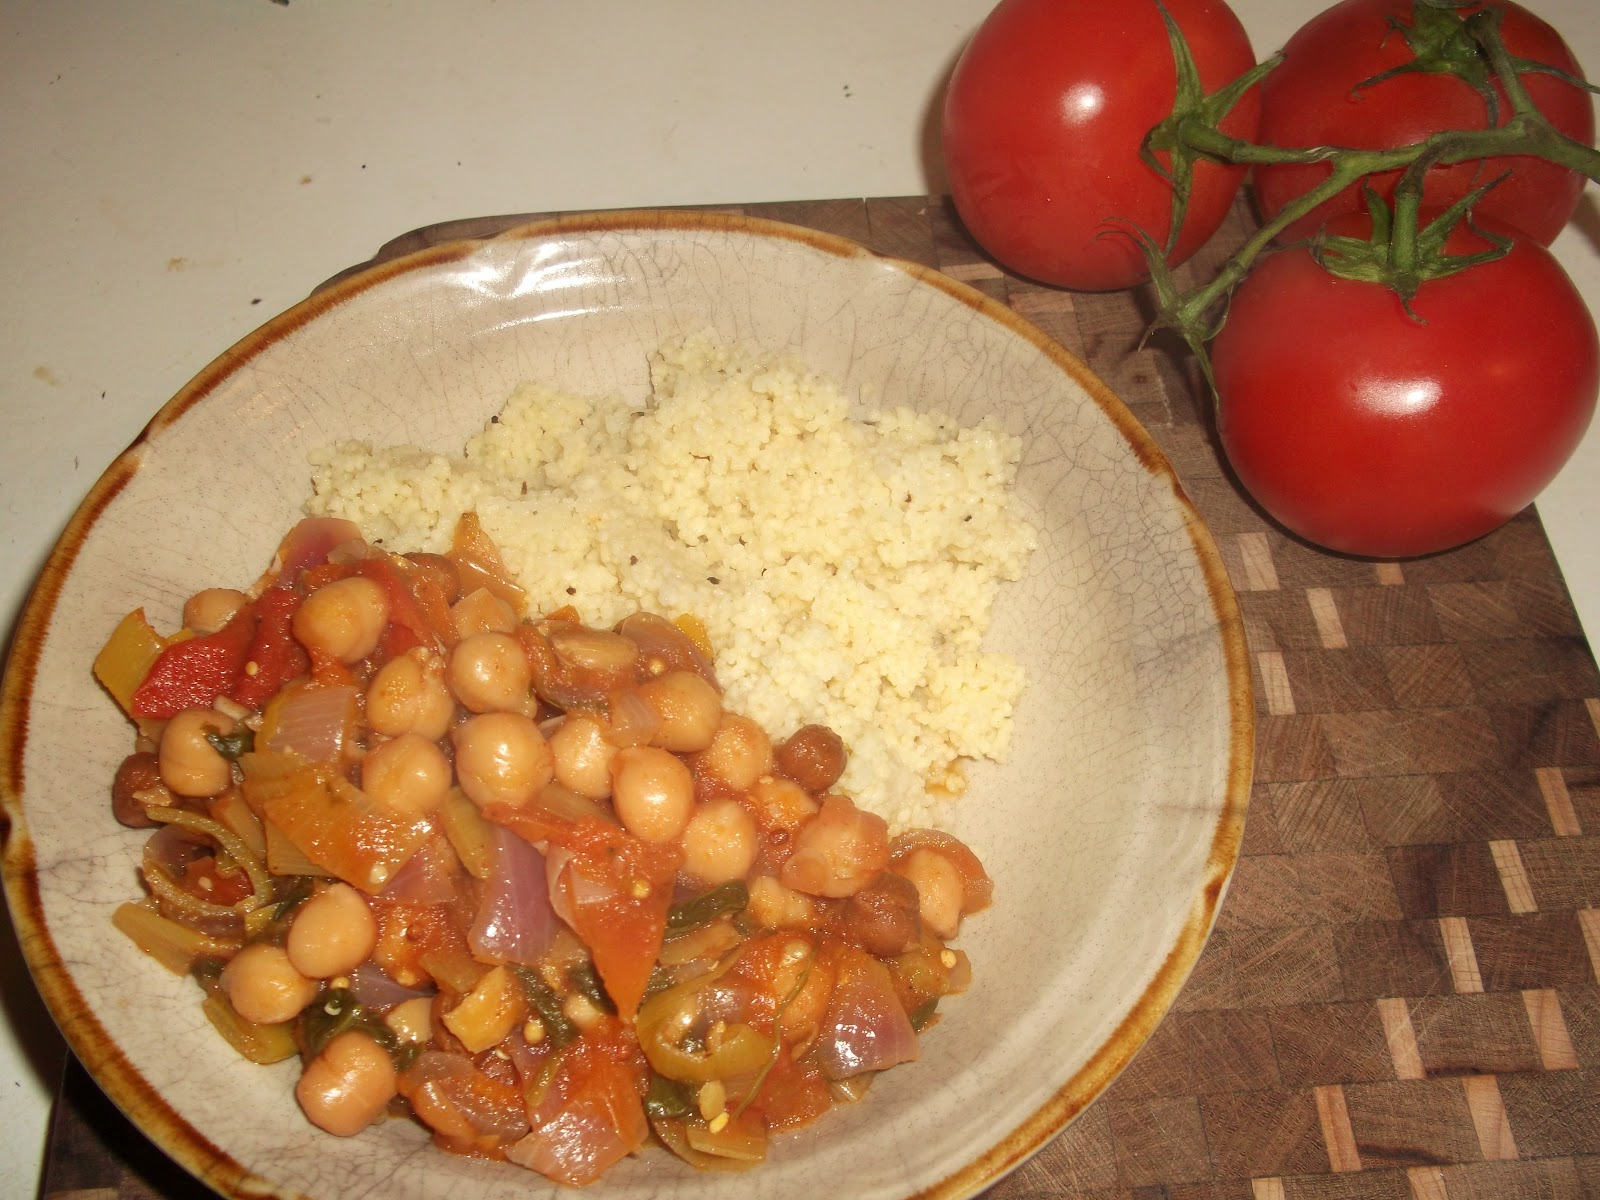 vegan vaginas: Matildas spicy chickpea stew of champions